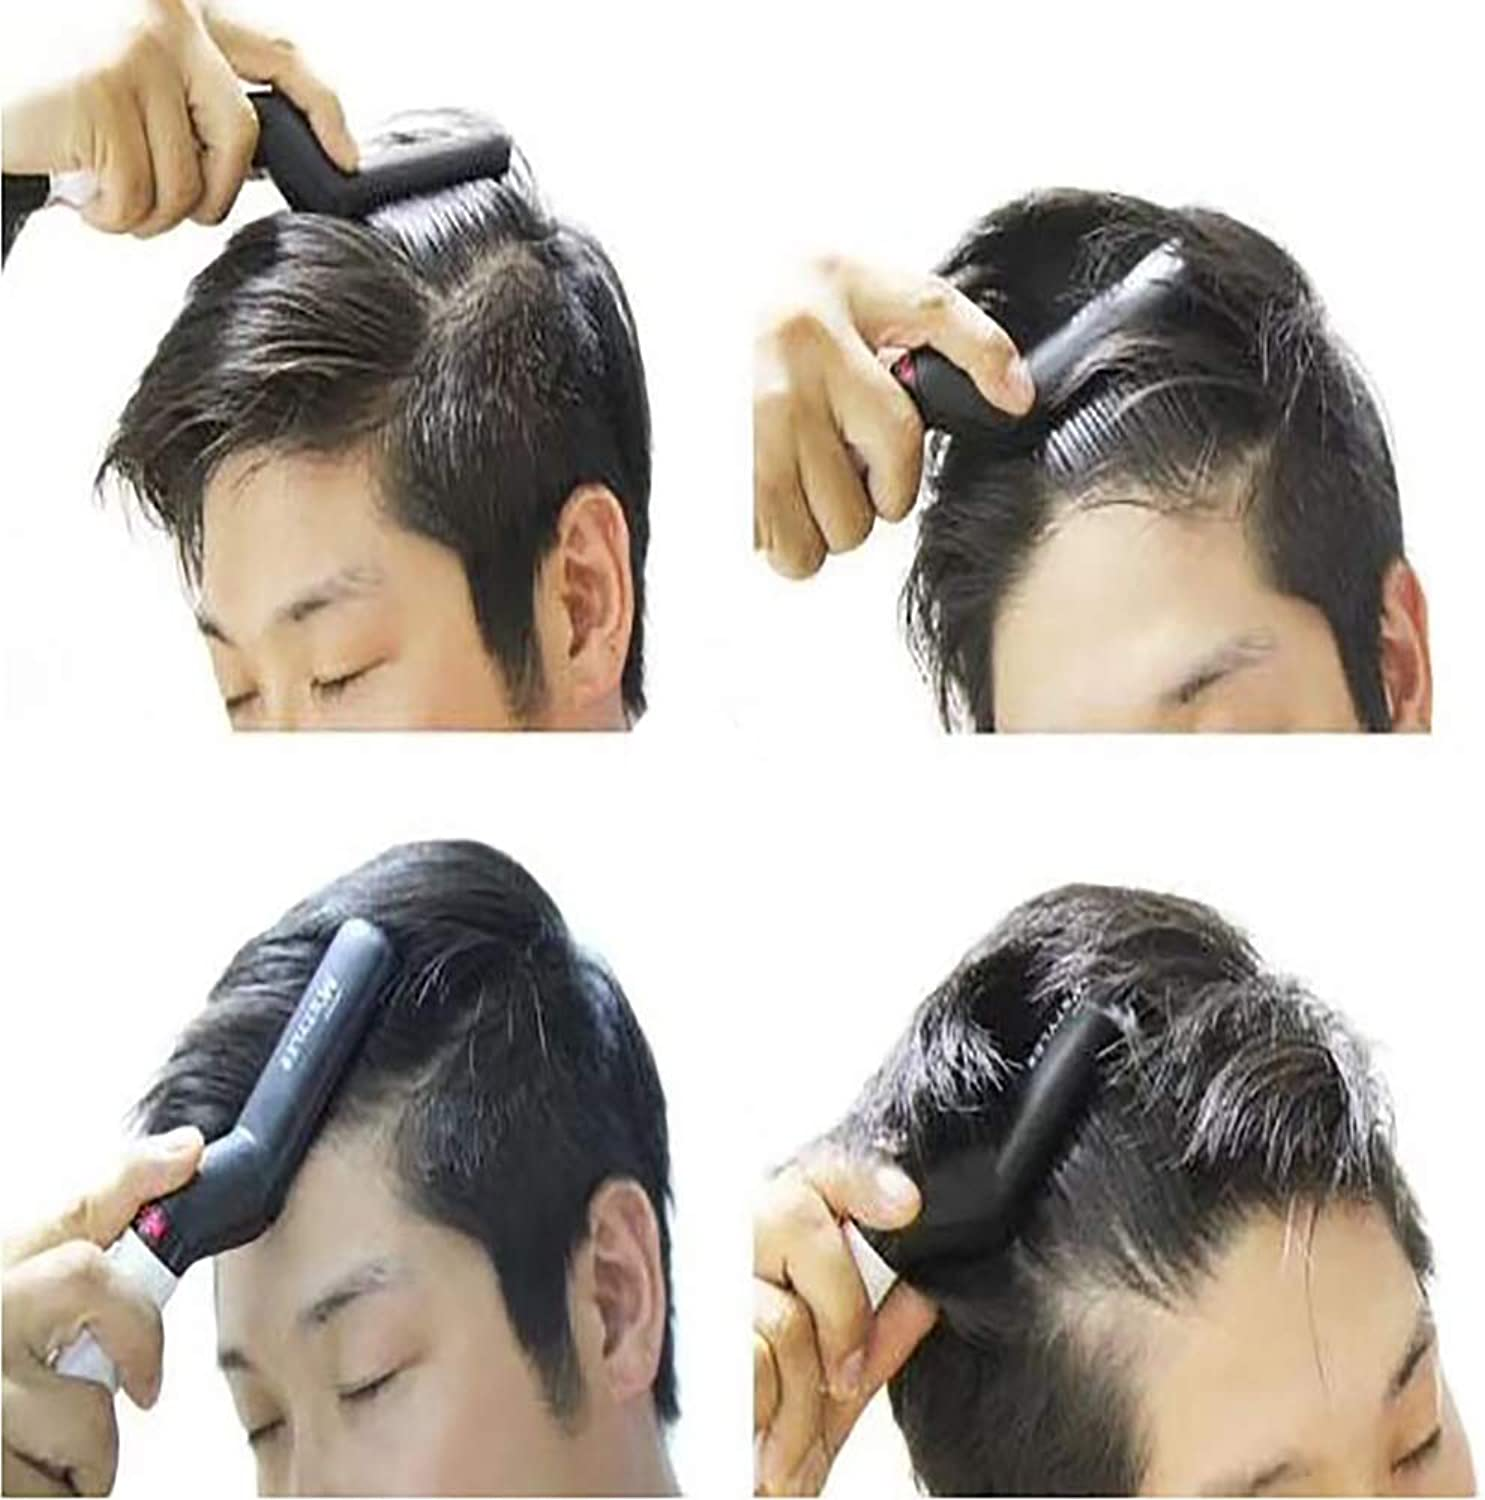 Multifunctional Straight Hair CombMen's Hair Styling CombMassage Hair Comb Hair Styling Combfor The MassesA Variety of Styling to Create Their Own